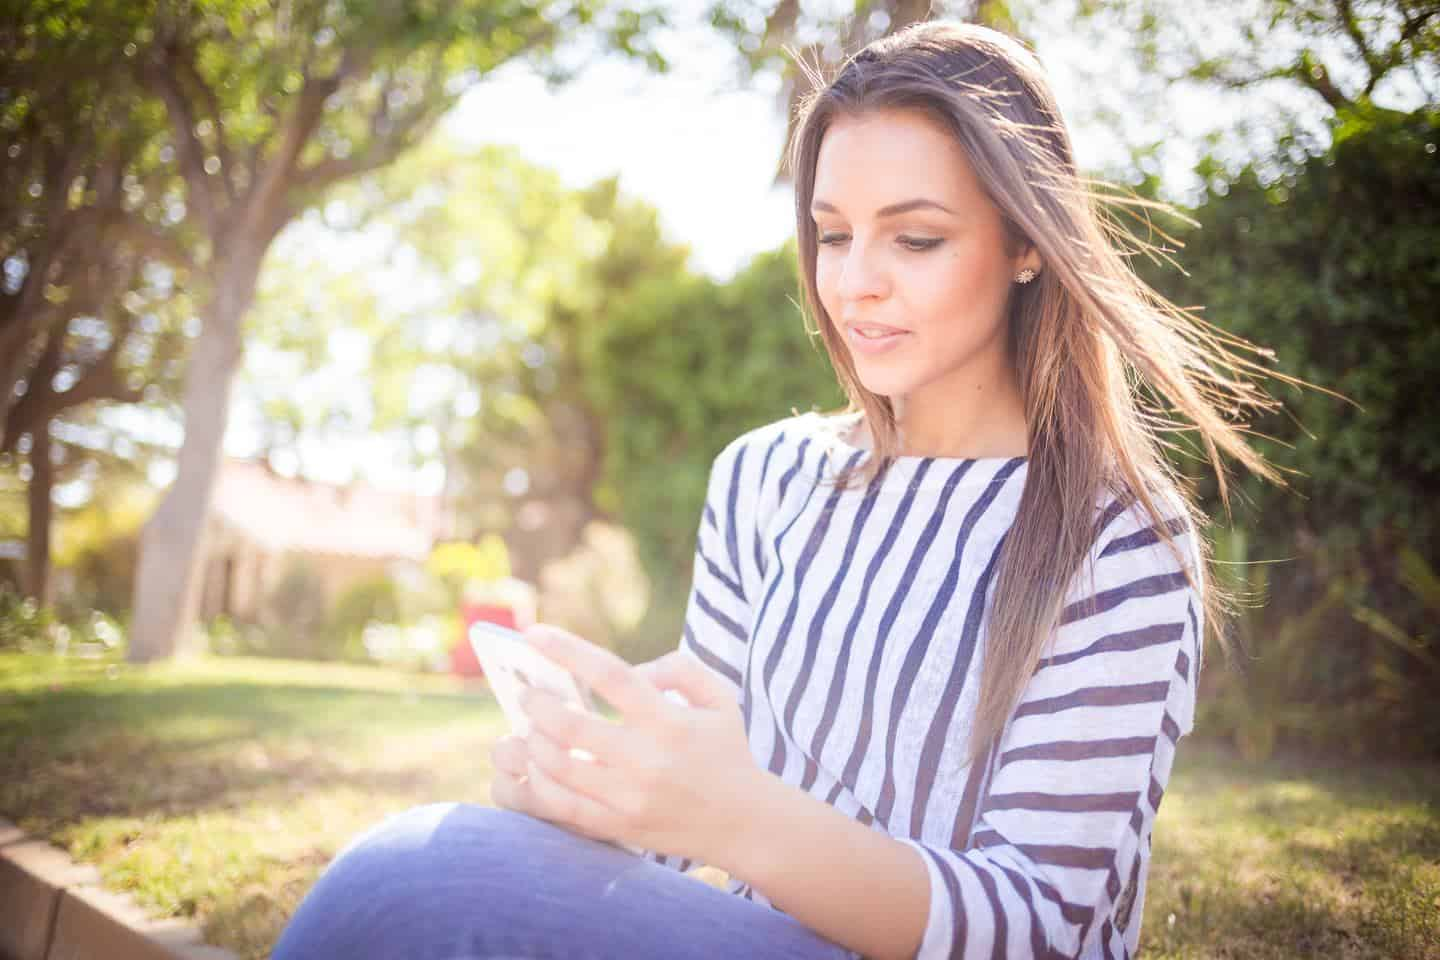 woman watching ads for money on her phone